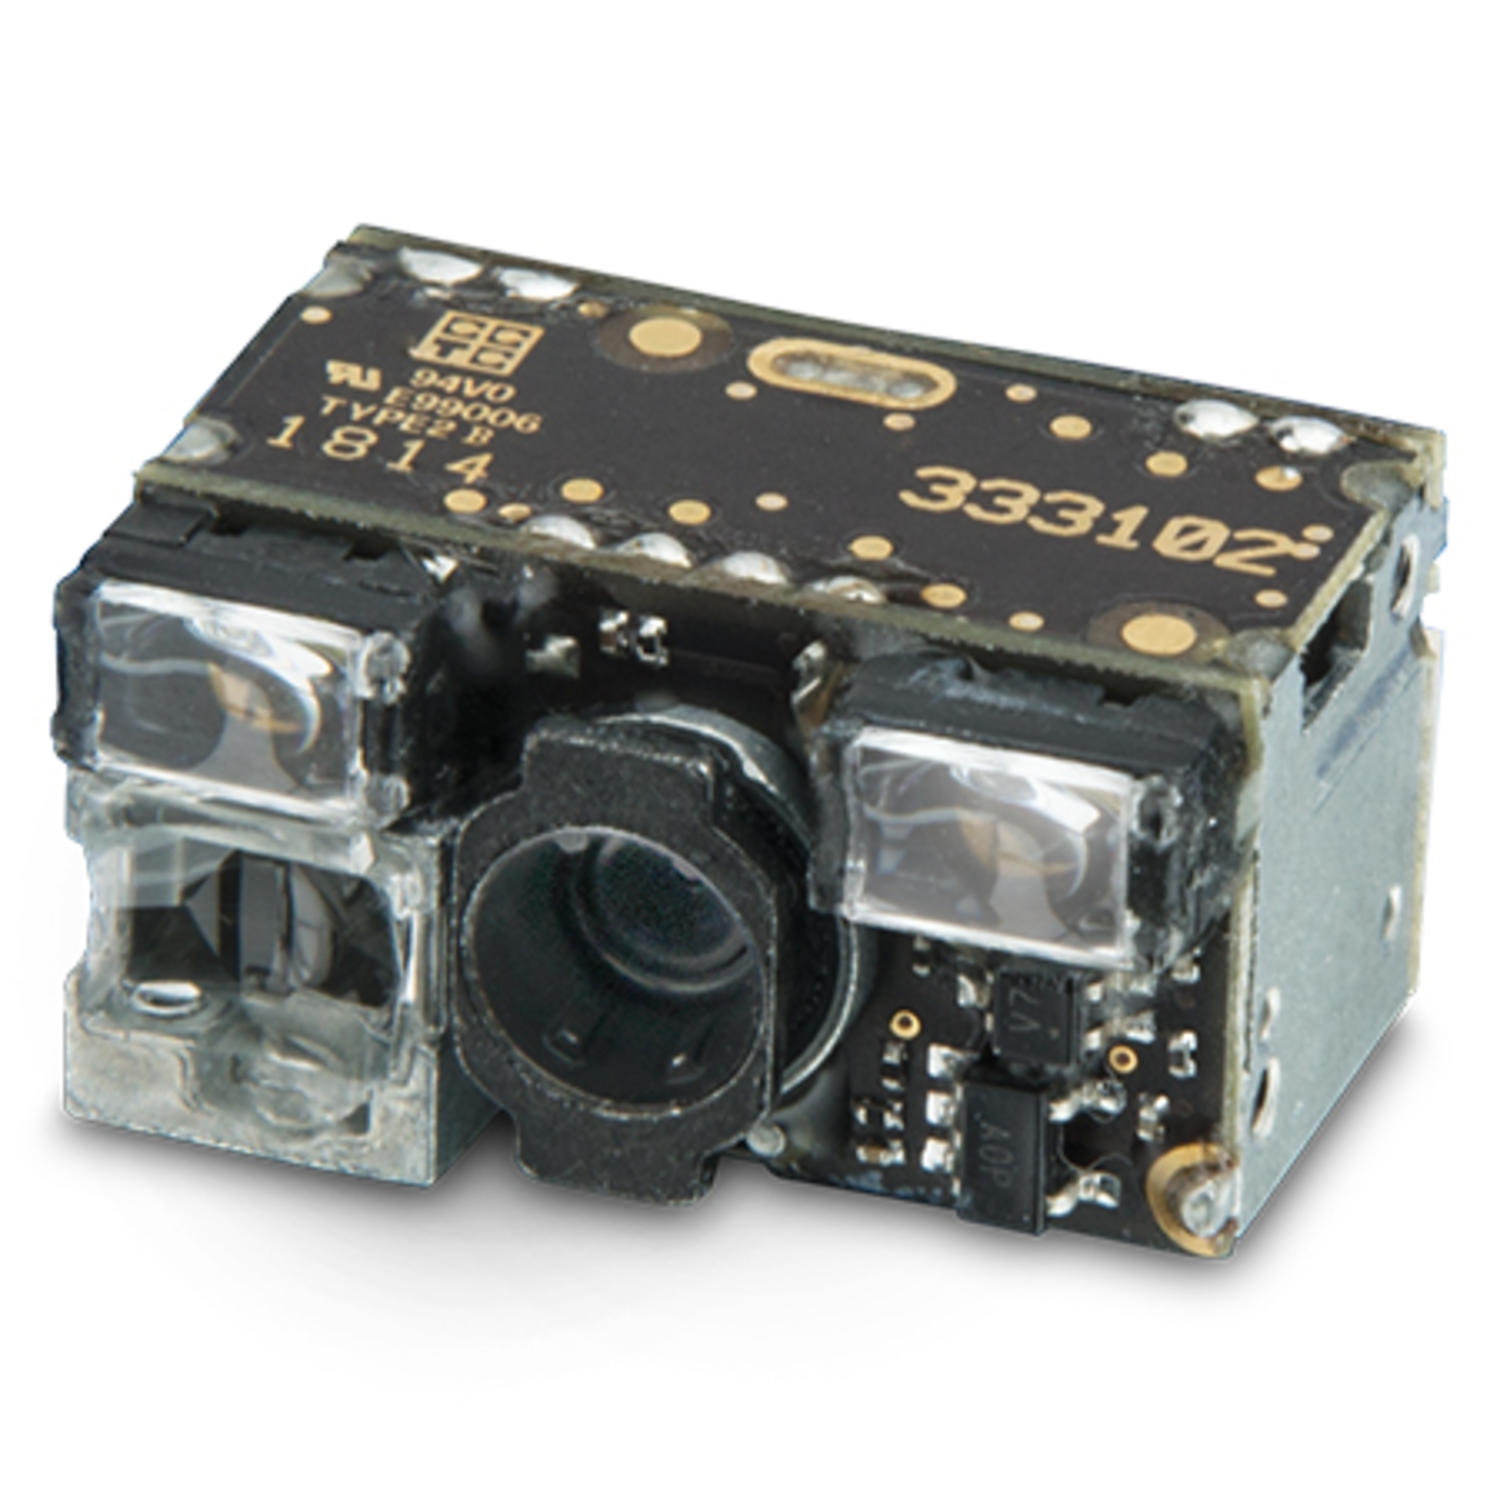 DE2011-DL 1D/2D Ultra compact scan engine